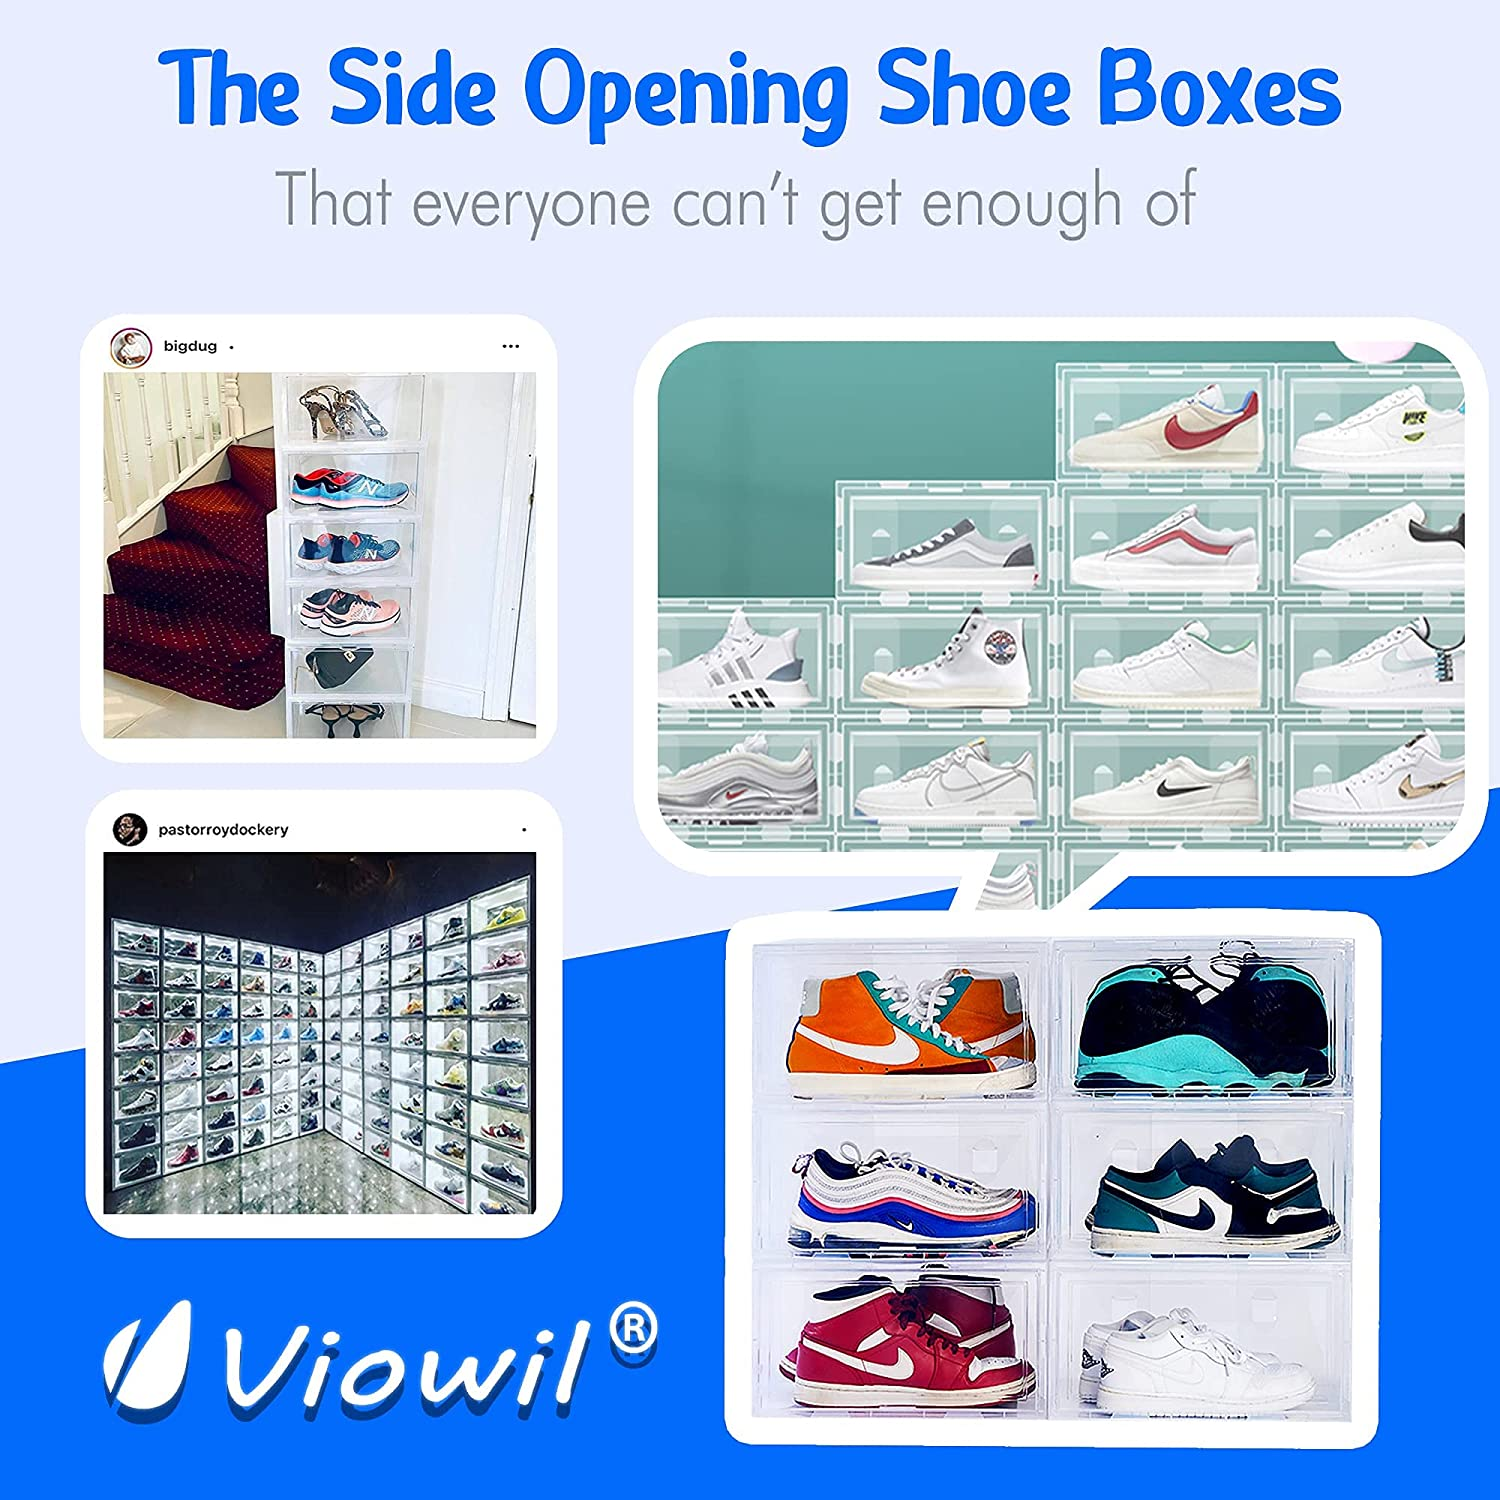 Clear Plastic Sideways Open Sneaker Shoe Holder Display Case Shoe Boxes Containers for Closet Entryway with Side Lids Mothers Day Gifts Shoe Organizer Storage Stackable Box 6 Pack